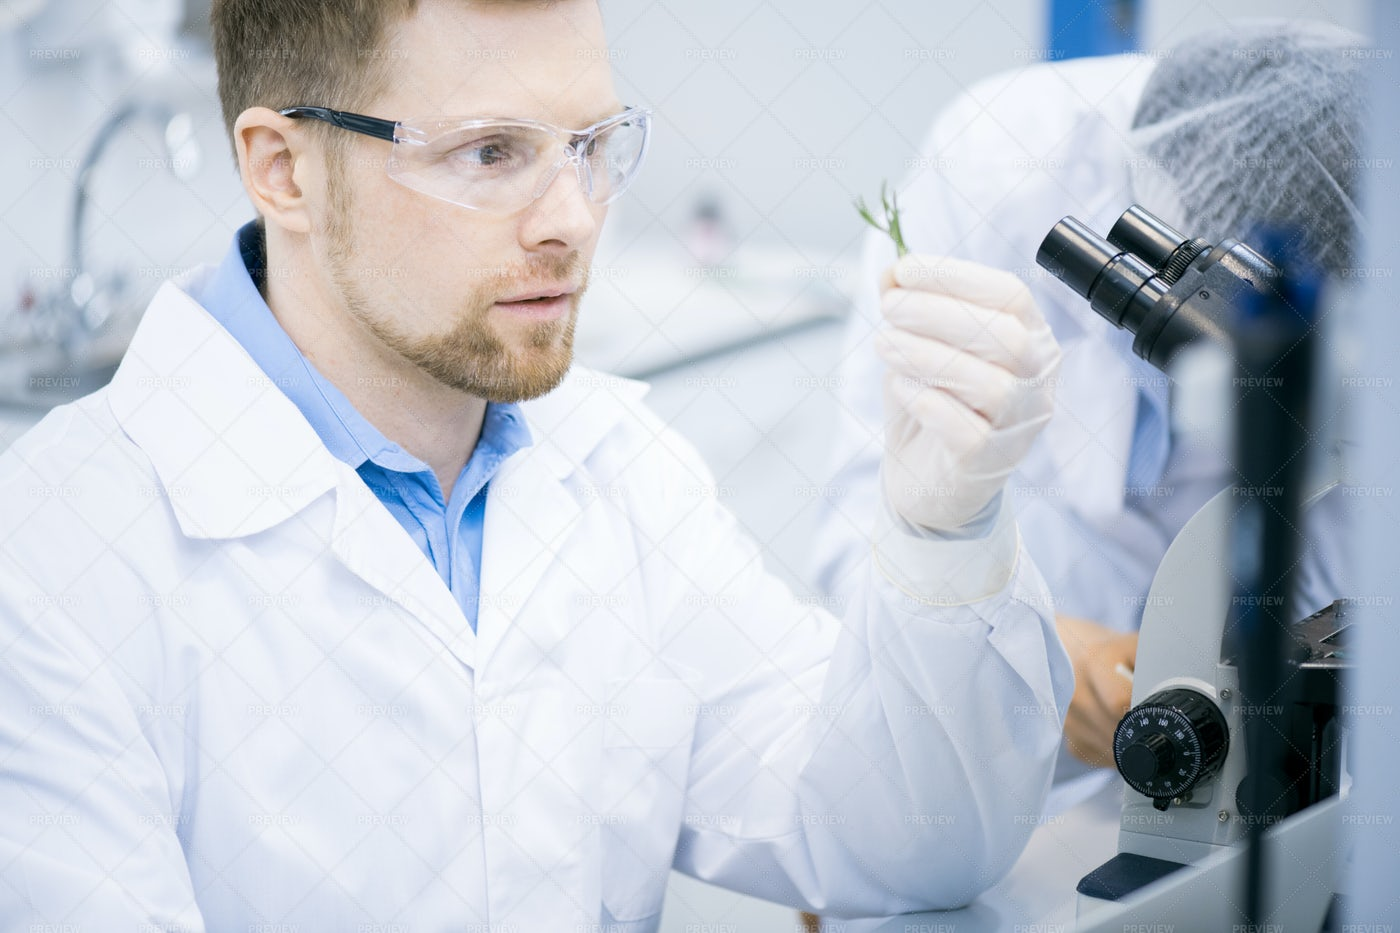 Modern Scientist Doing Research In...: Stock Photos